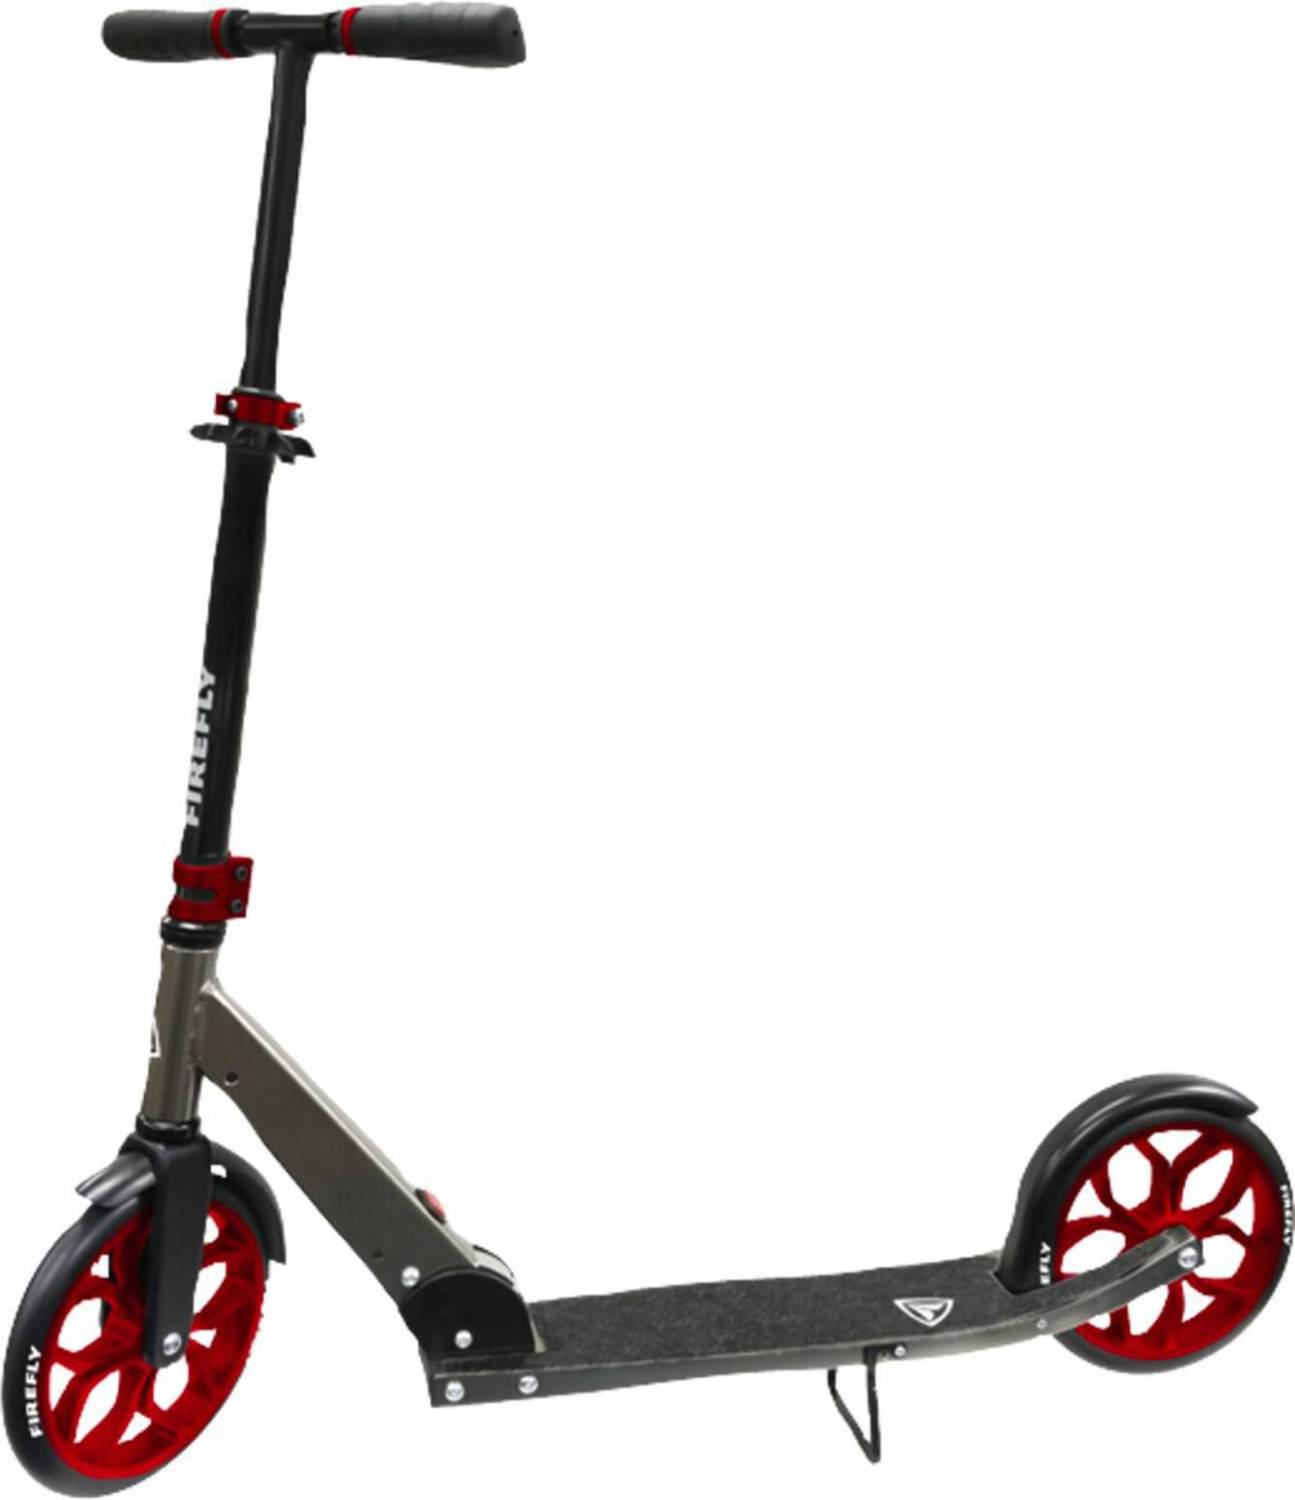 firefly-ff-230-urban-scooter-farbe-900-black-silver-red-